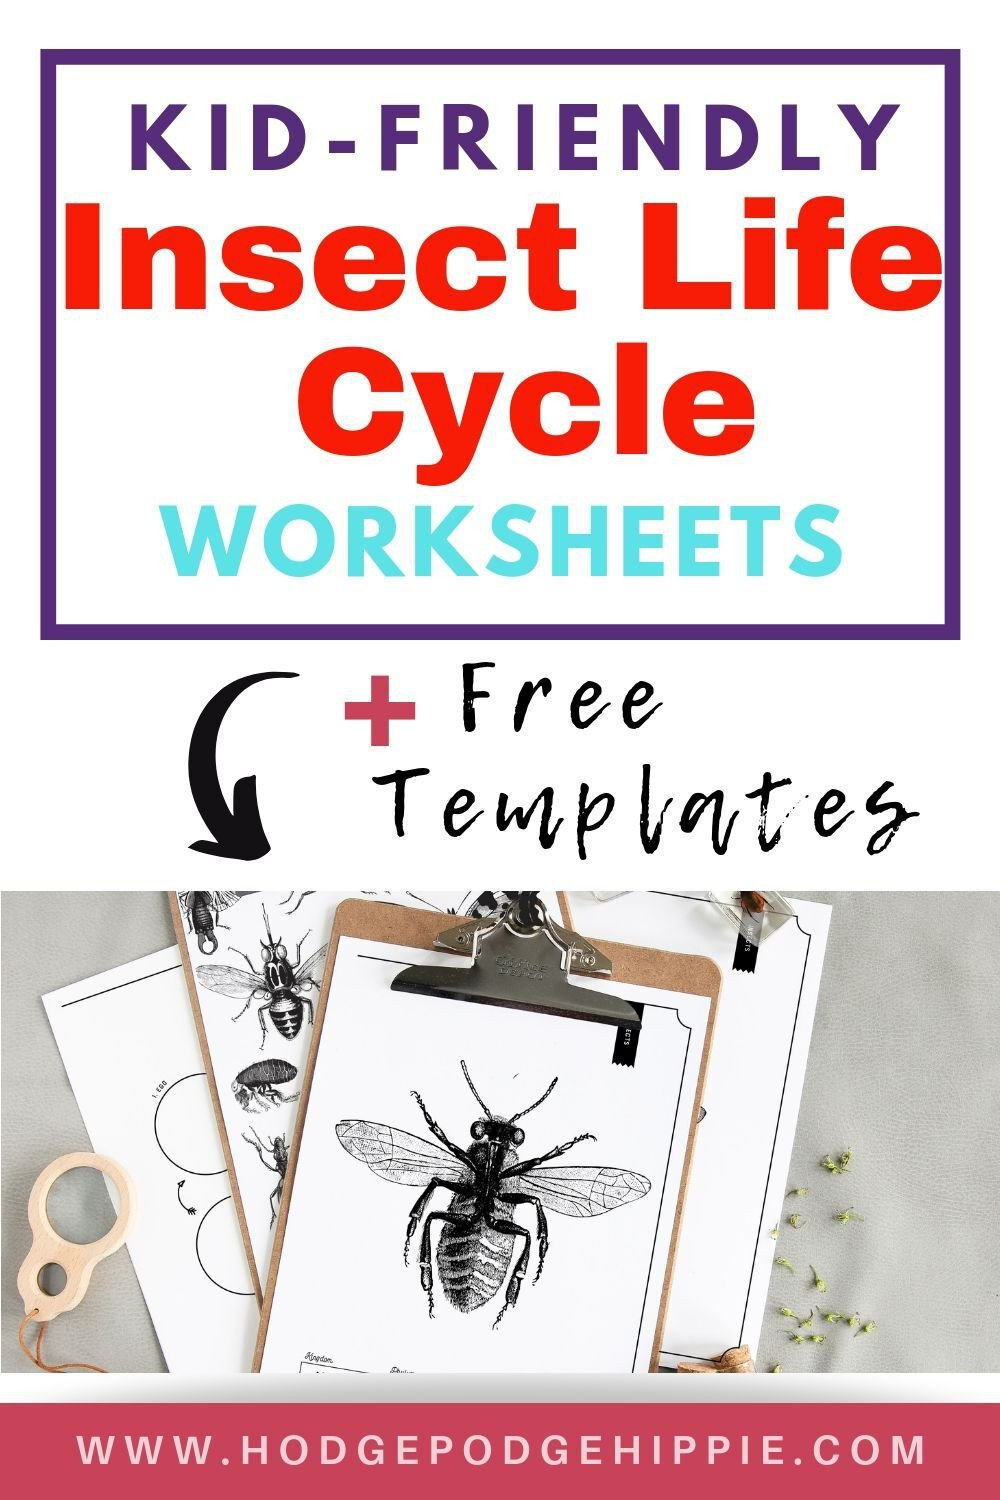 INSECT LIFE CYCLE WORKSHEET